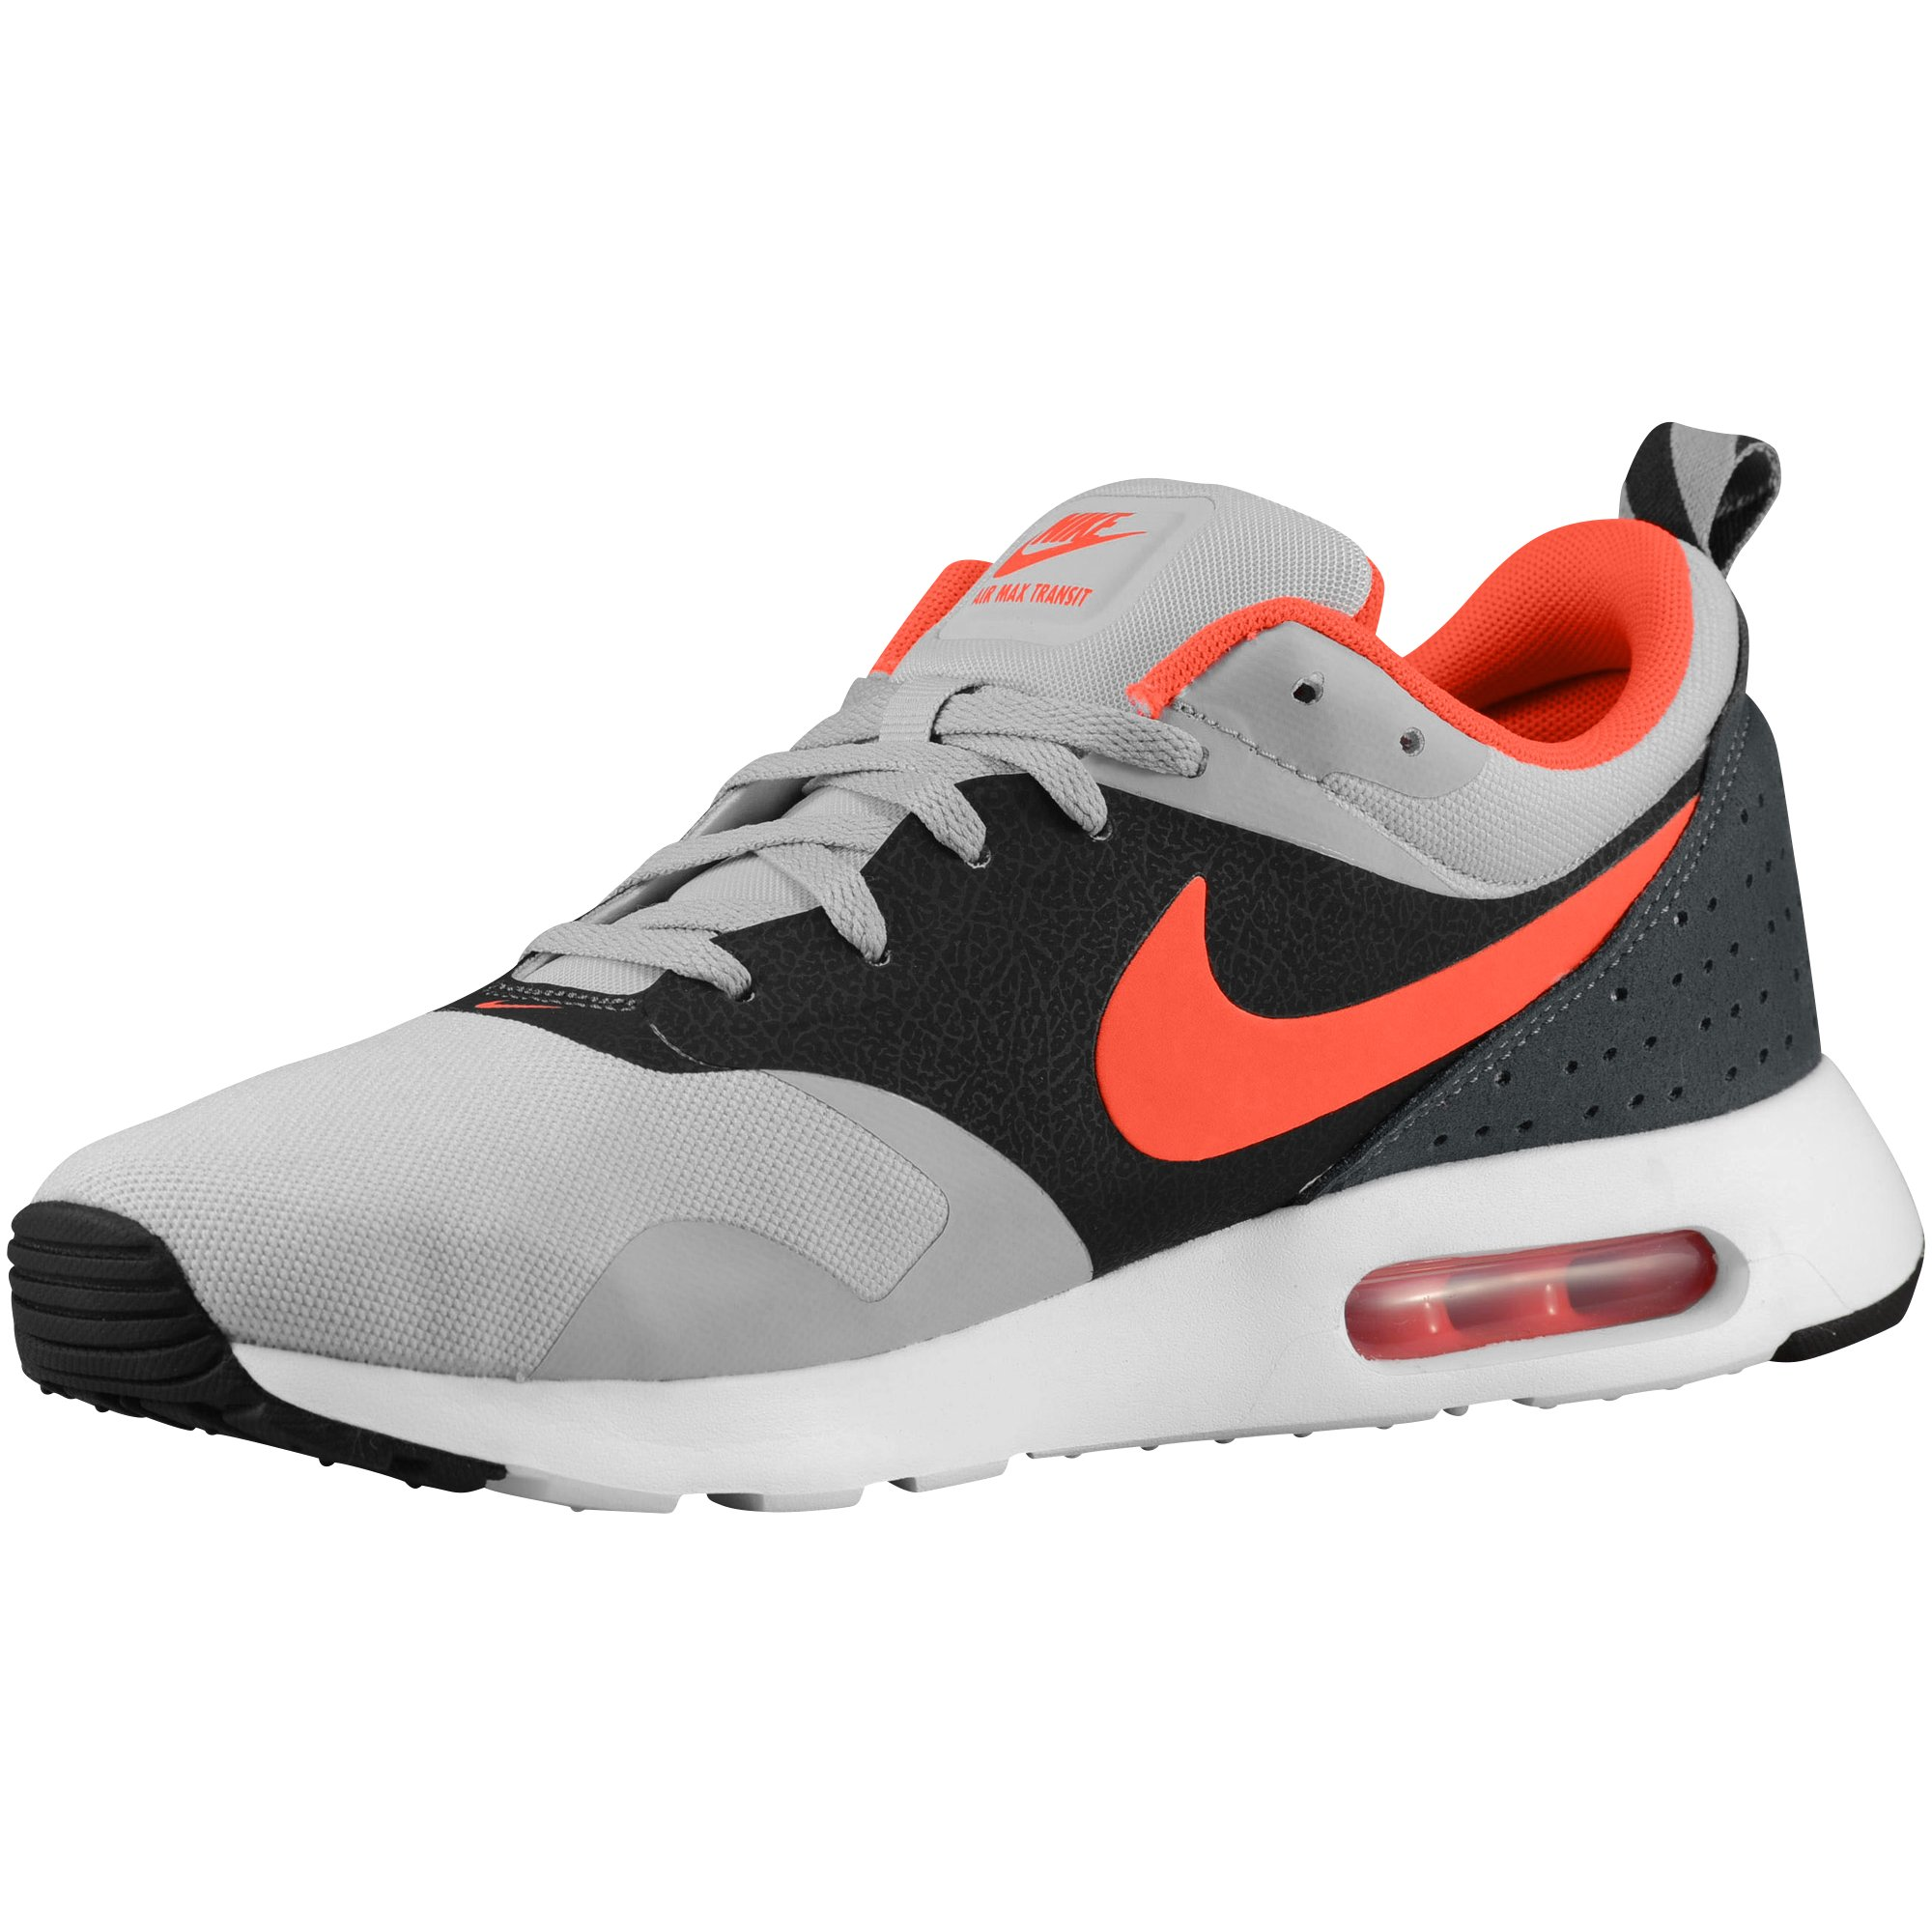 nike air max tavas neutral grey anthracite bright. Black Bedroom Furniture Sets. Home Design Ideas